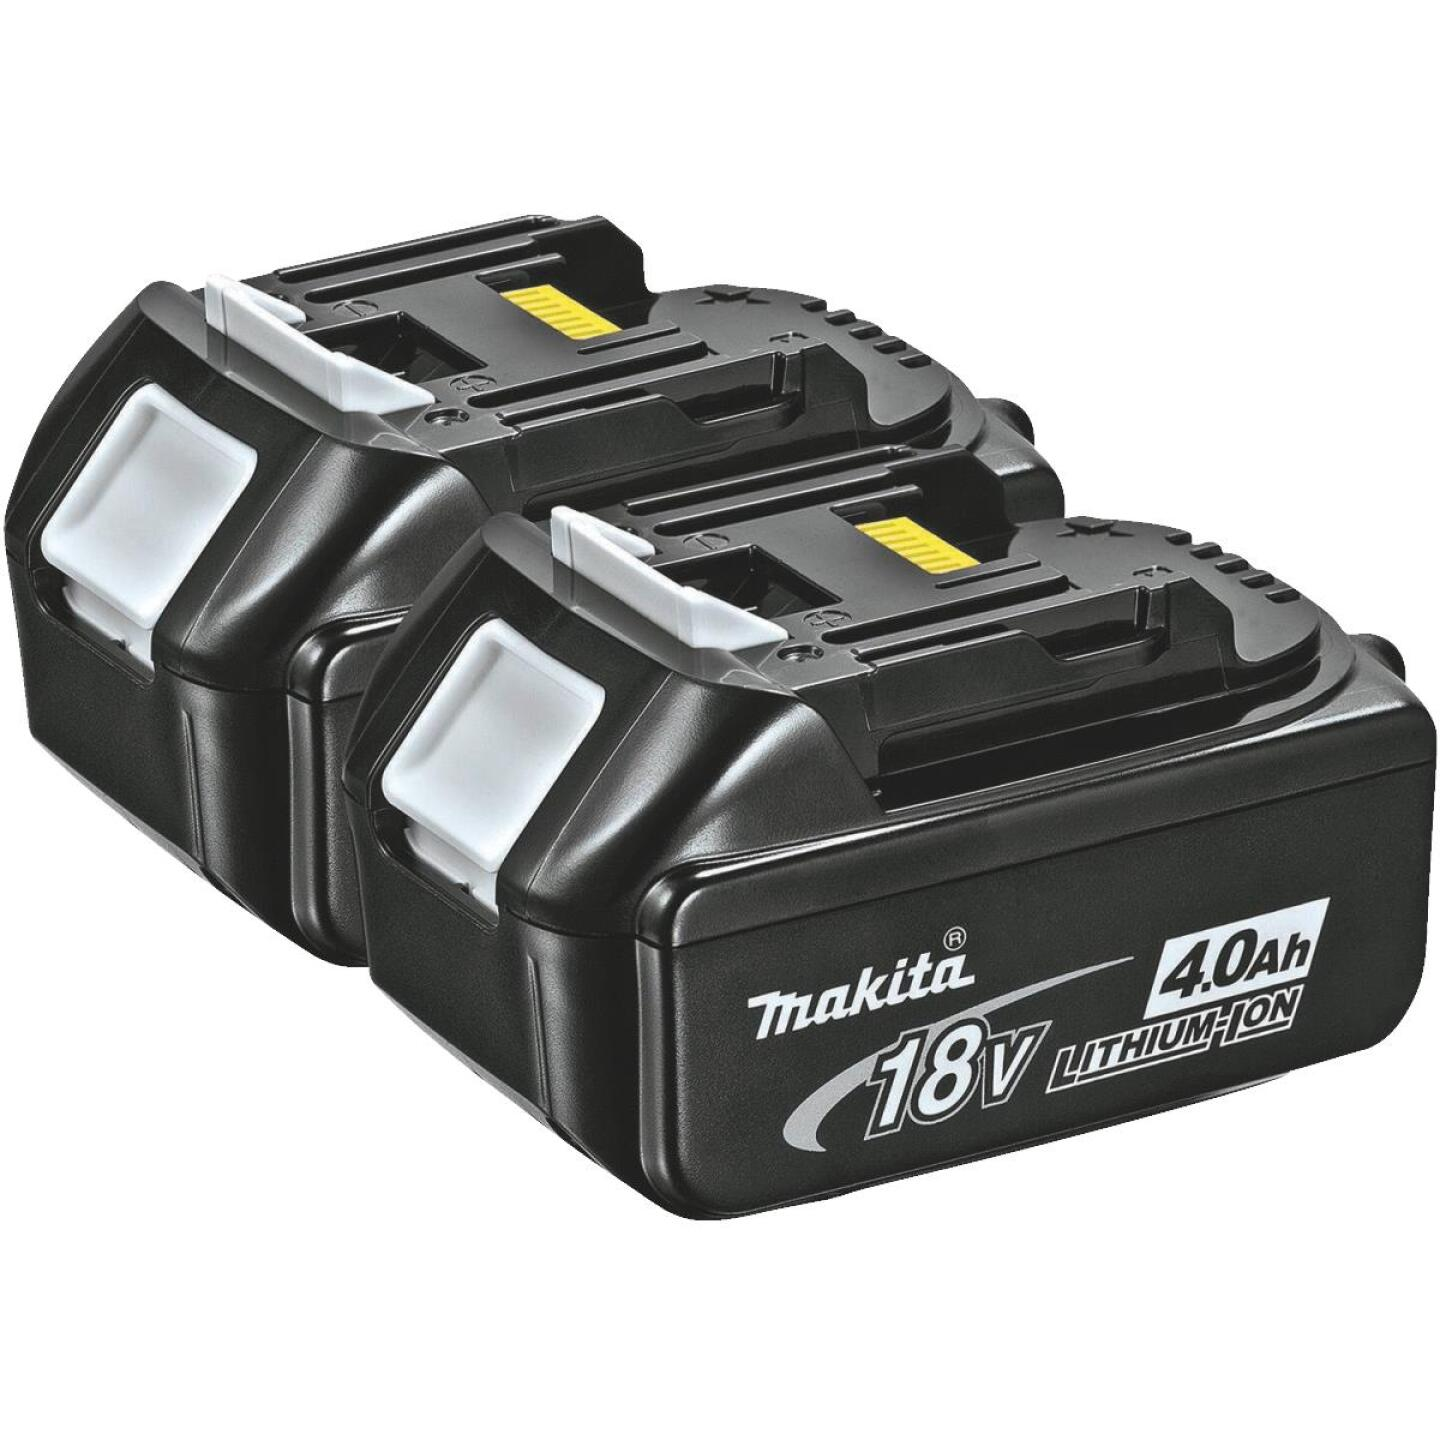 Makita 18 Volt LXT Lithium-Ion 4.0 Ah Tool Battery (2-Pack) Image 1